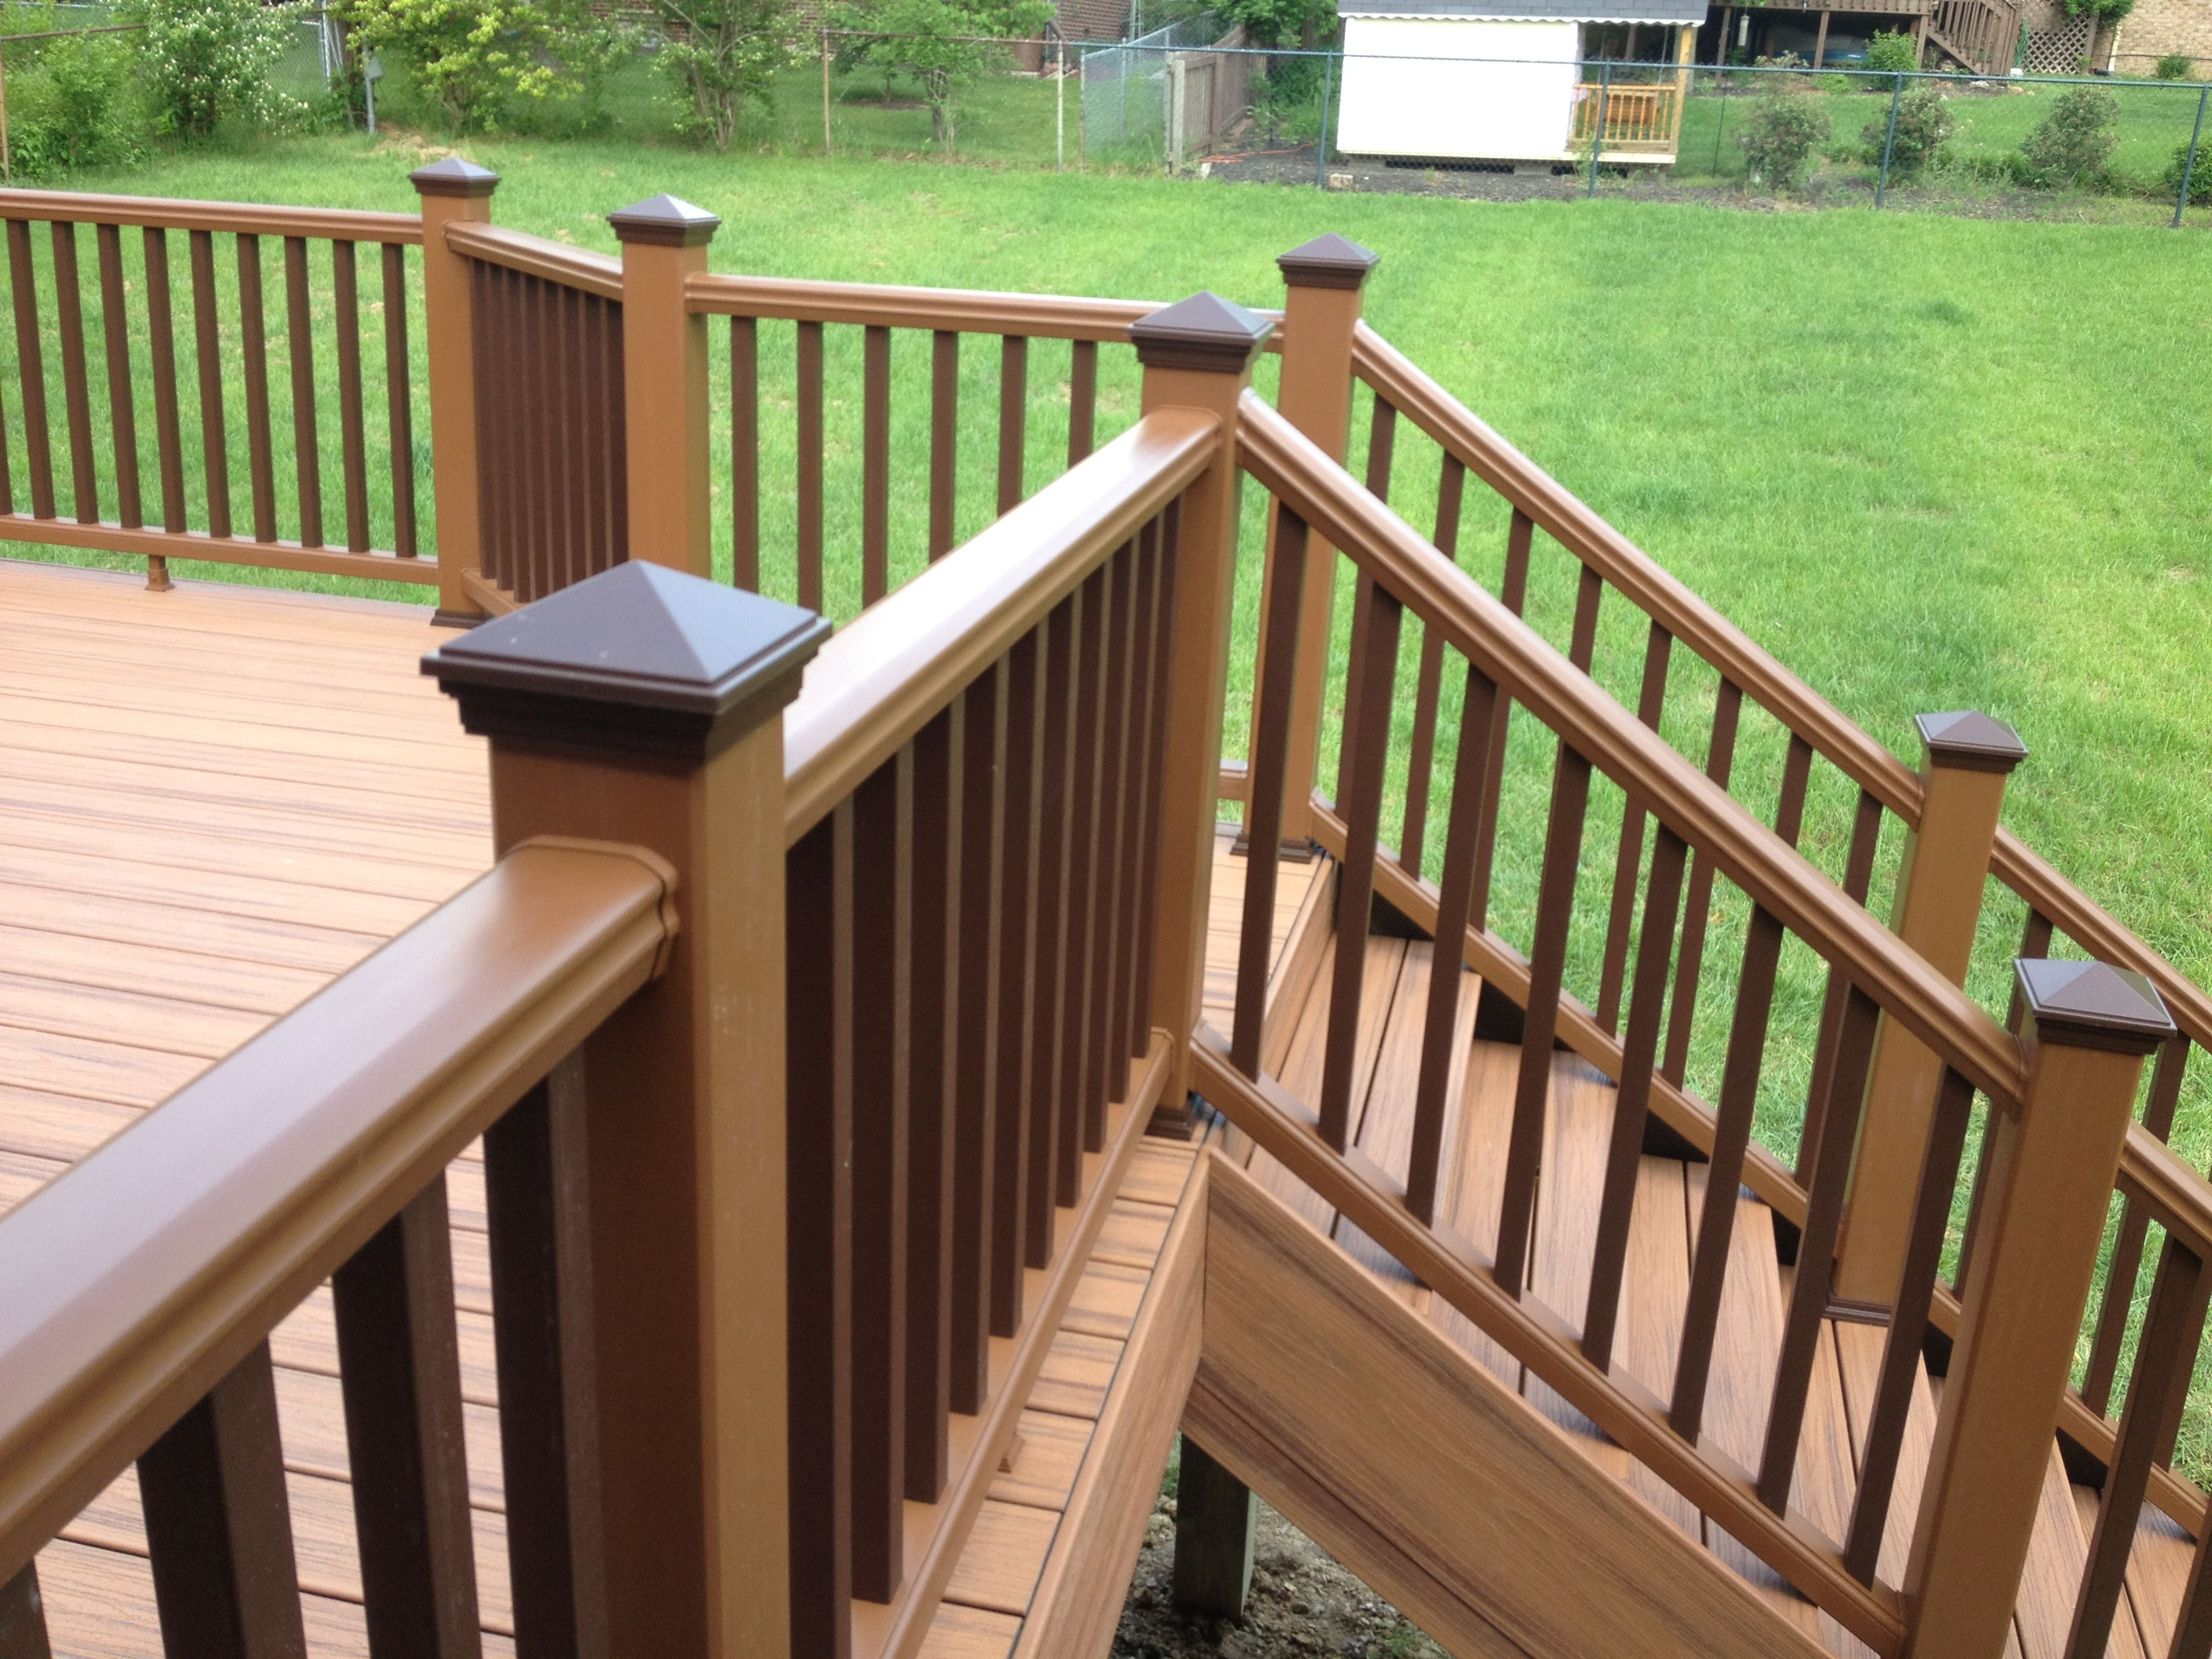 Transcends rail in treehouse with vintage lantern accents for Composite decking and railing